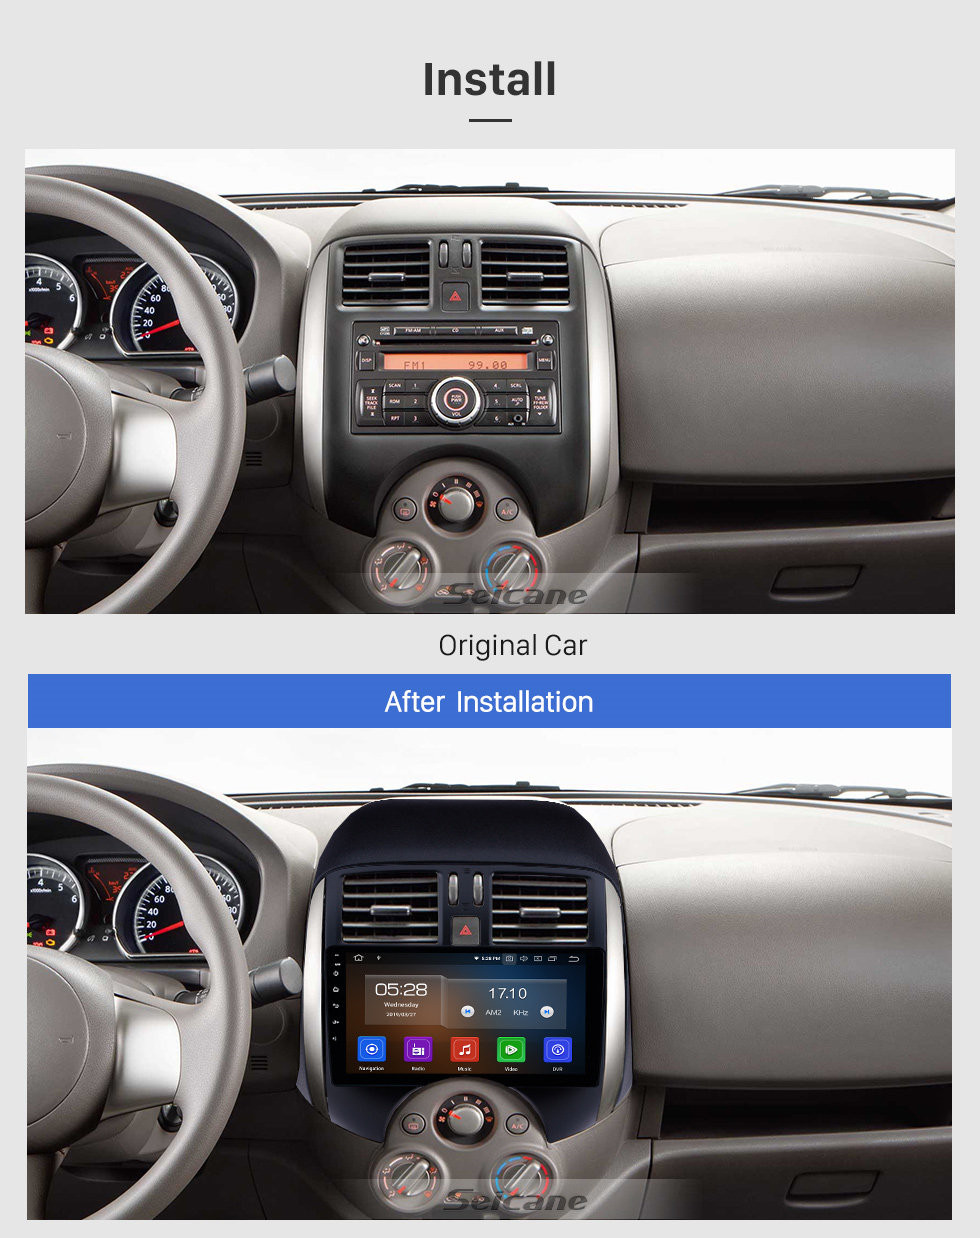 Seicane All in one Android 10.0 GPS Navigation 9 inch HD Touchscreen Stereo for 2011-2013 Nissan Old Sunny Bluetooth FM WIFI USB Steering Wheel Control USB Carplay AUX support DVR OBD2